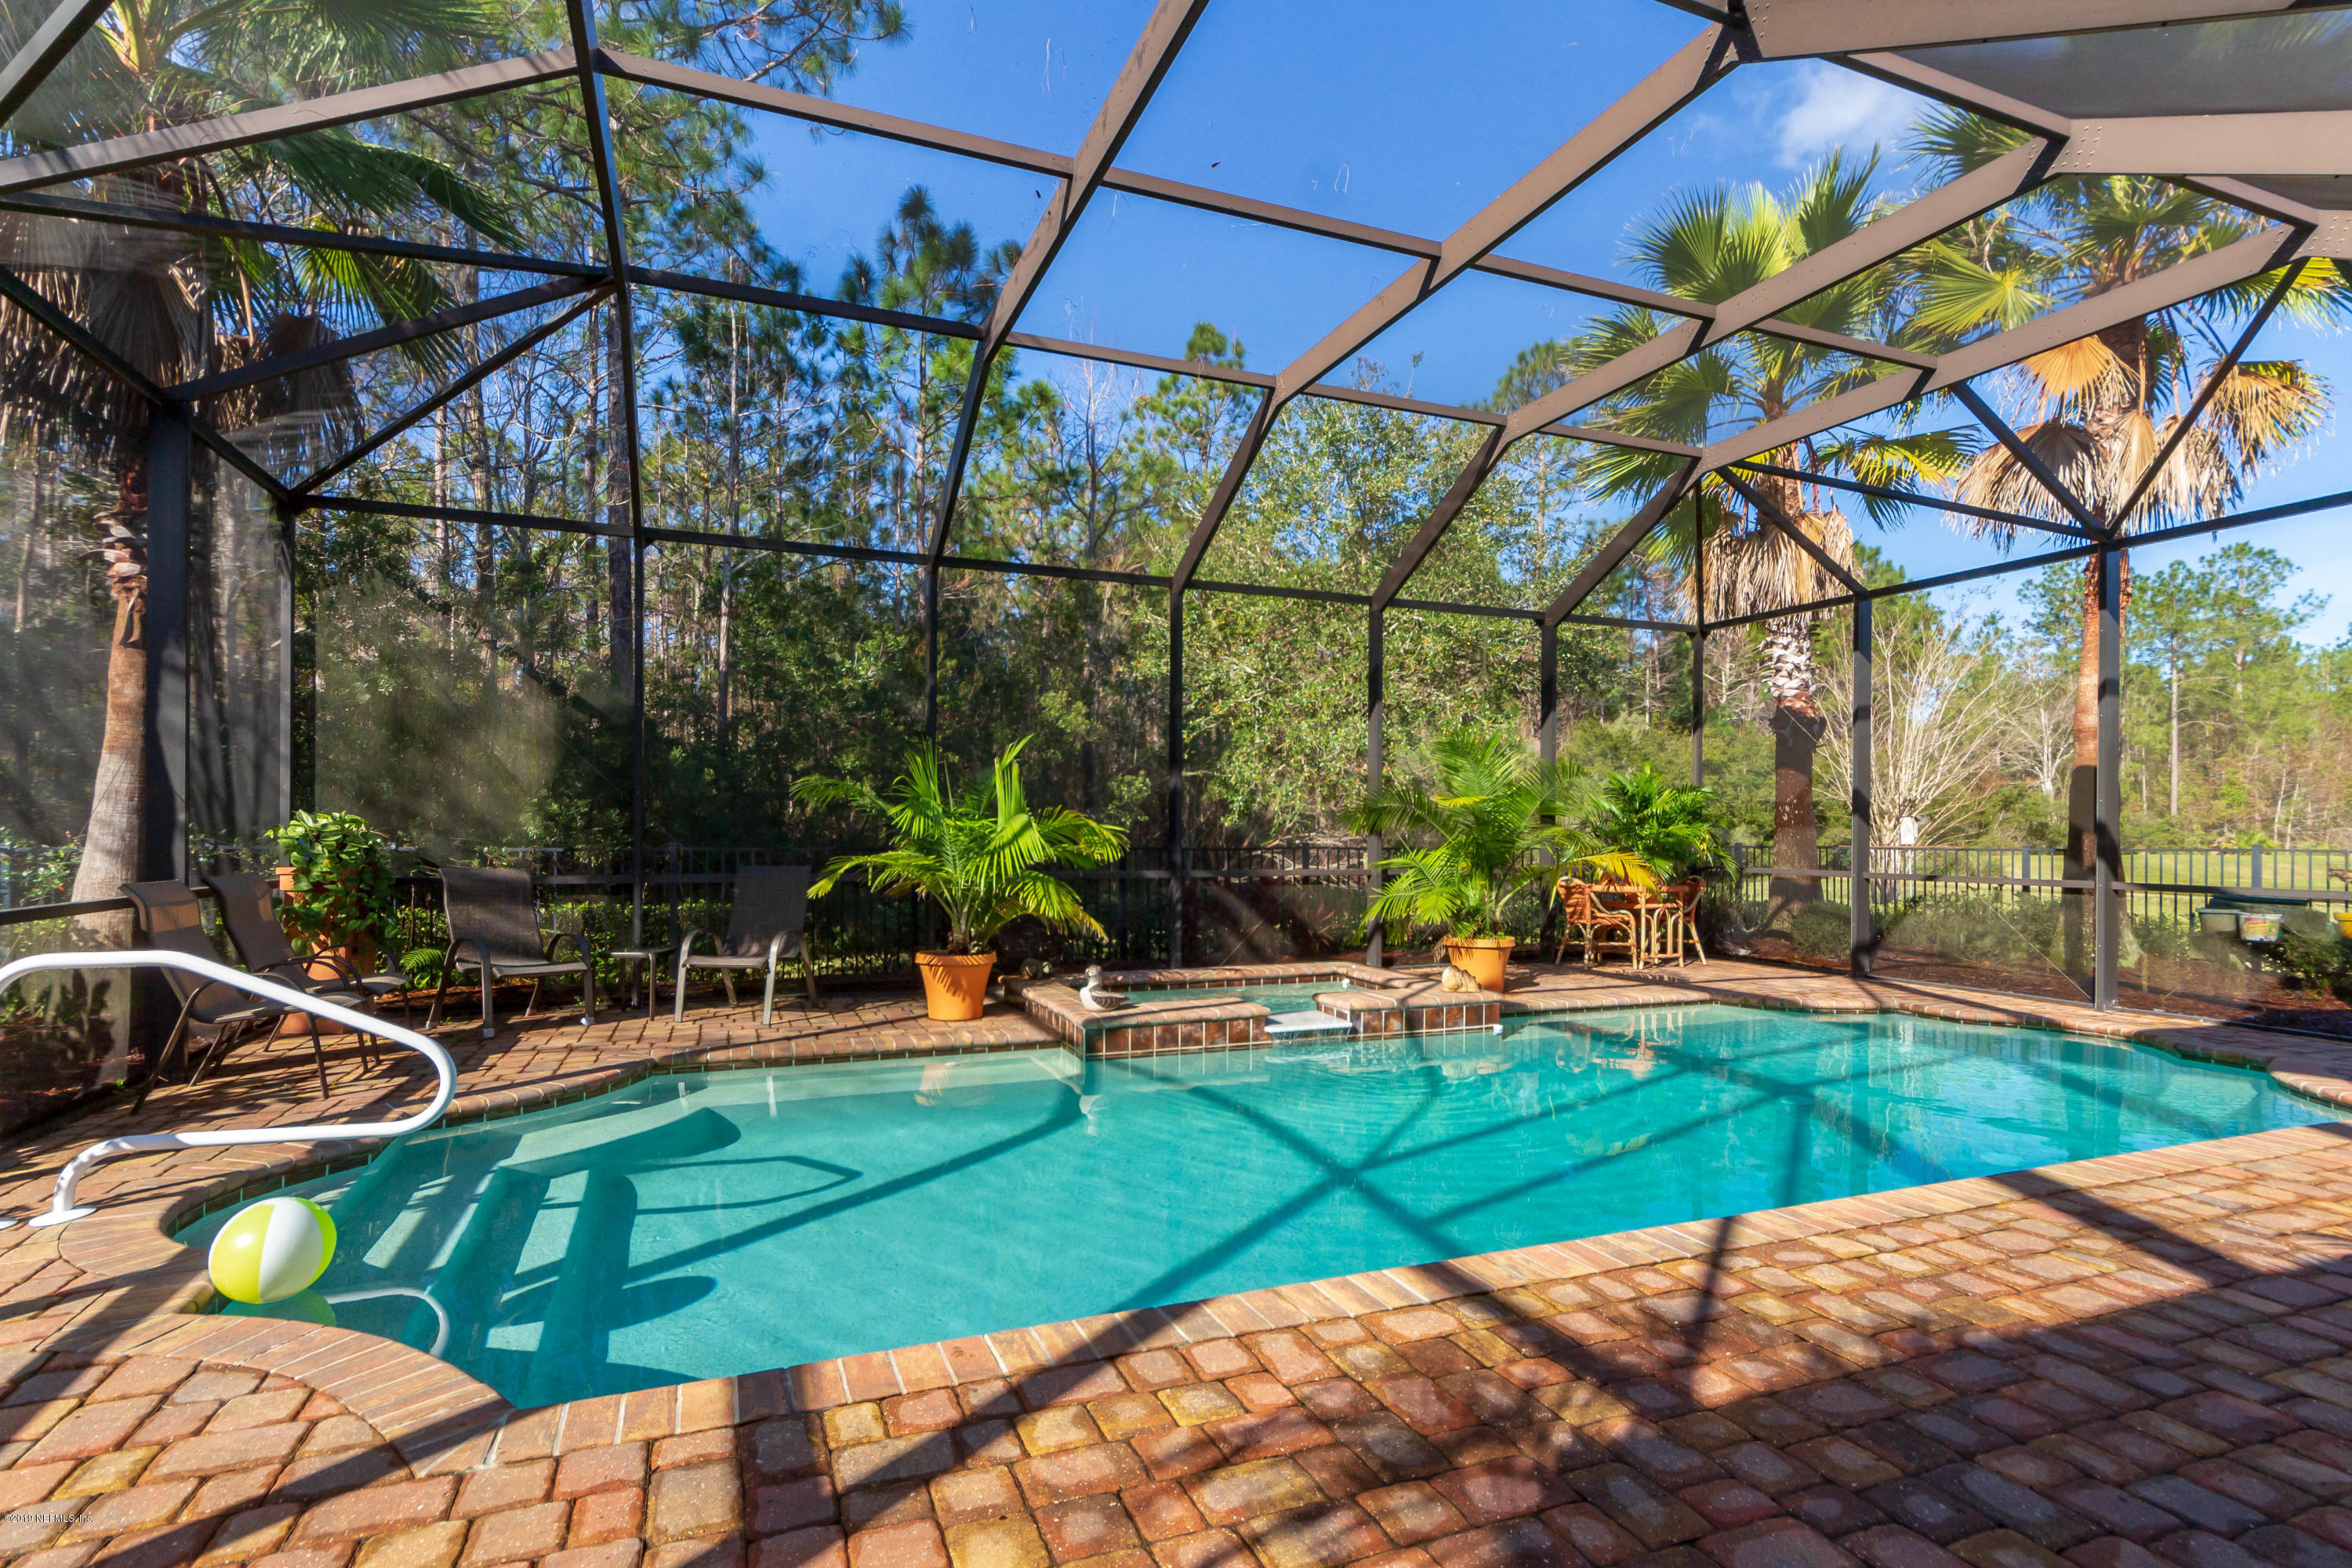 533 OLYMPIC CIR ST AUGUSTINE - 10